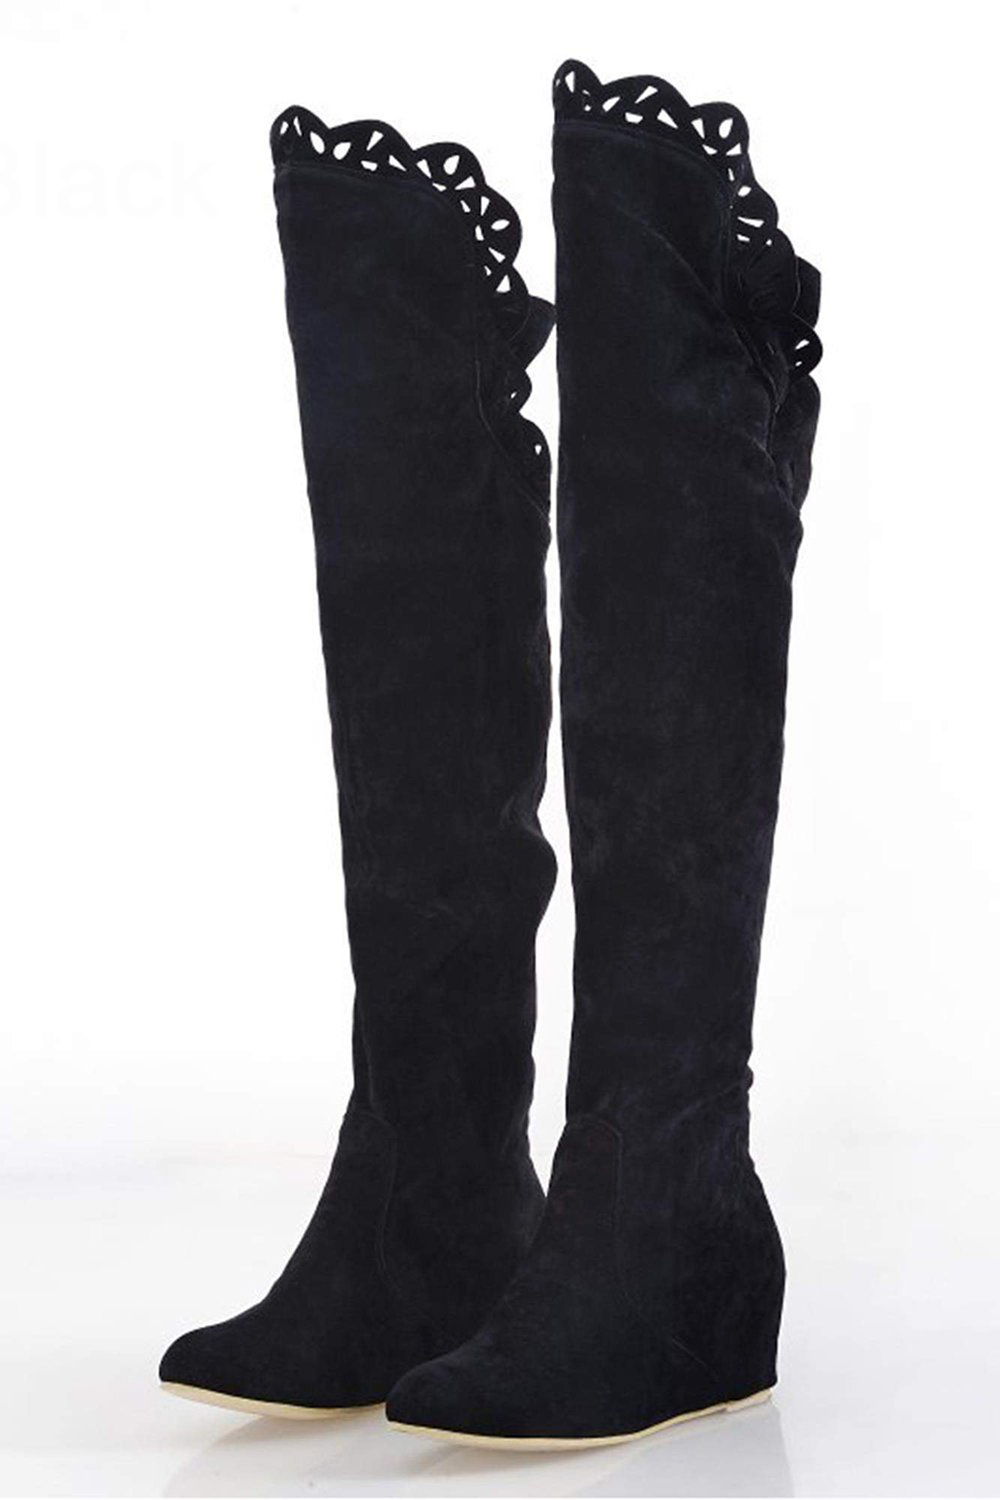 TEXU Women Stretch Faux Suede Slim Thigh lace High Boots Sexy Fashion Over the Knee Boots High Heels Woman Shoe 35-39 nayiduyun new fashion thigh high boots women faux suede point toe over knee boots stretchy slim leg high heels pumps plus size